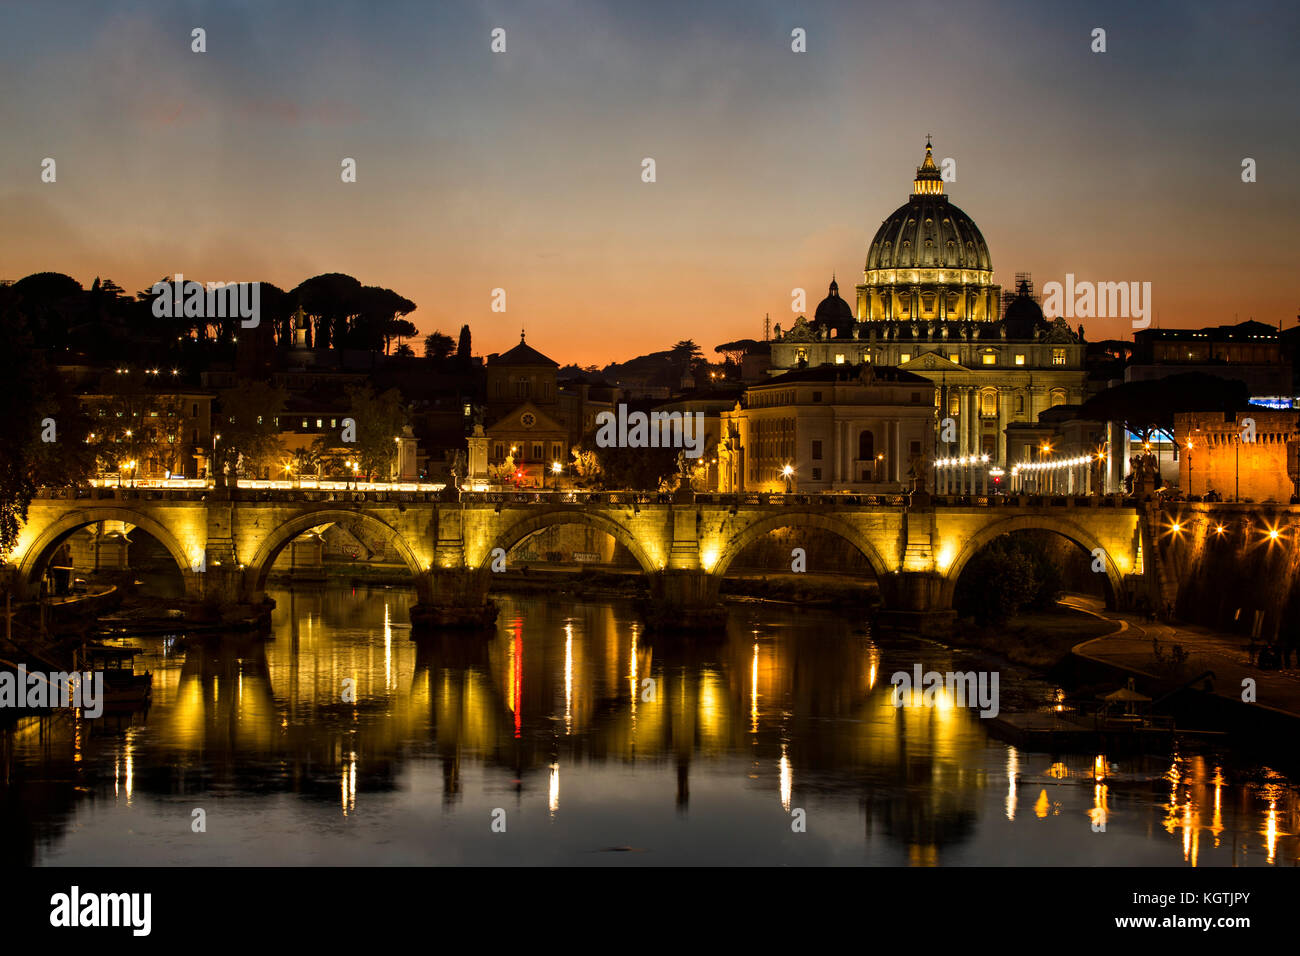 St. Peters Basilica and the Tiber River in Rome, Italy. - Stock Image